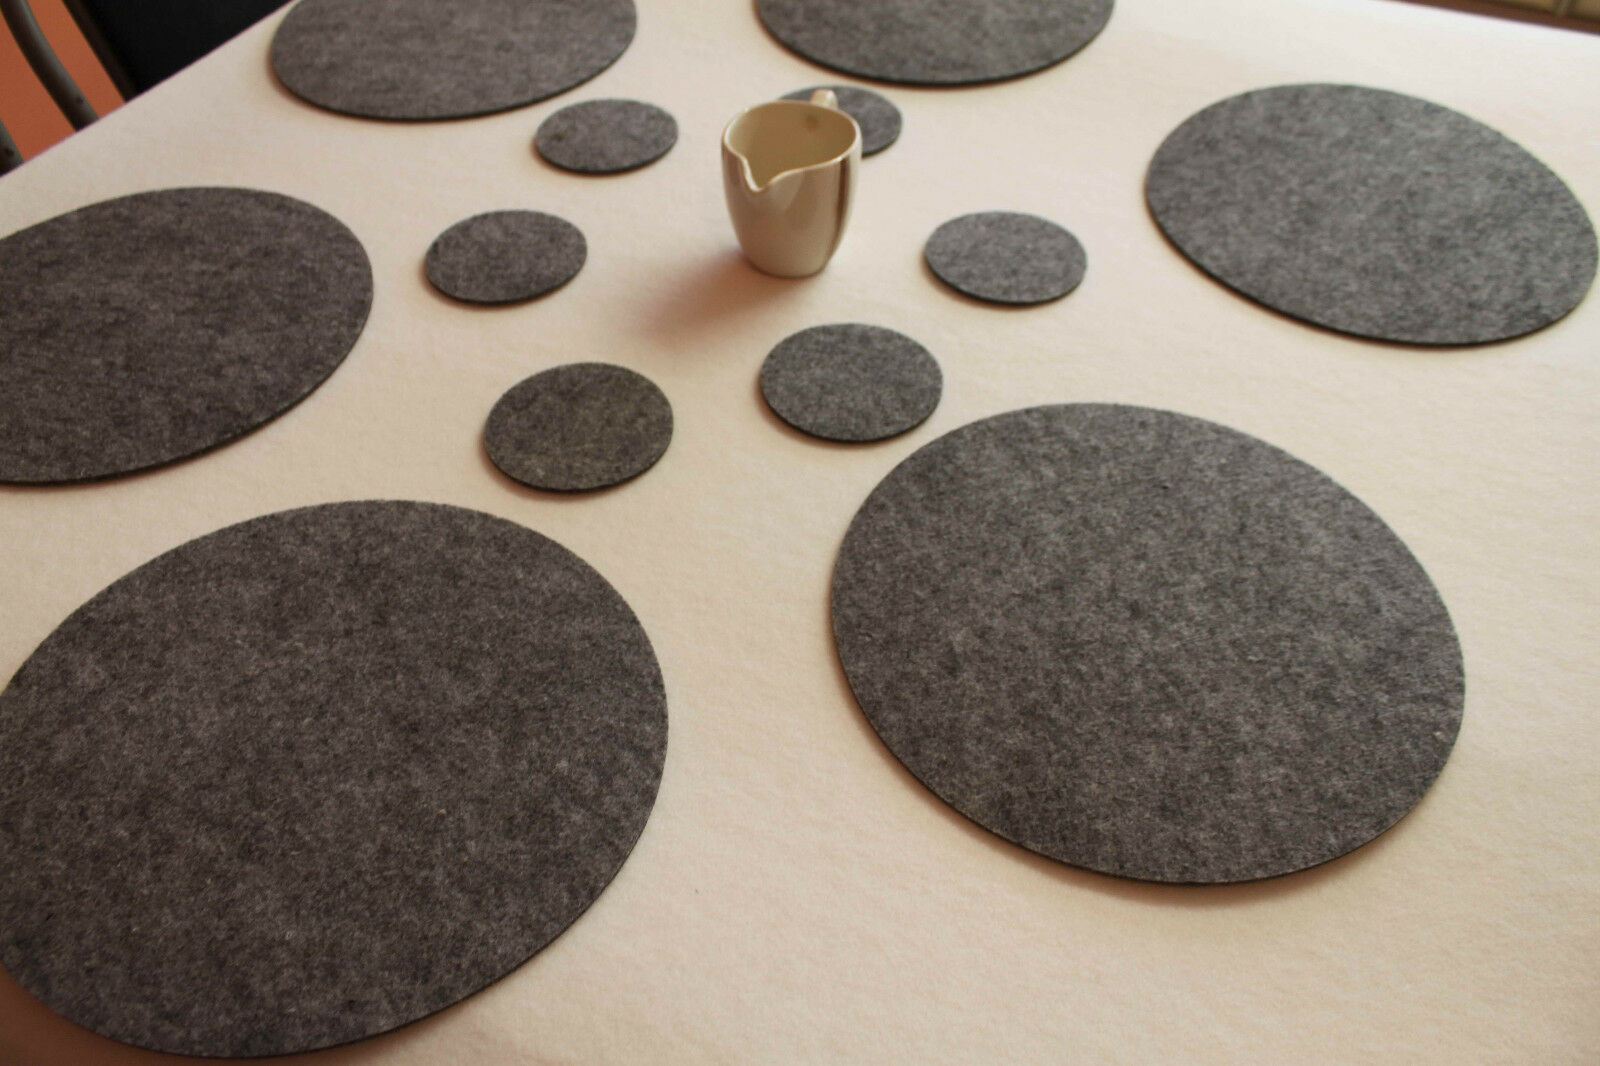 Placemats Coaster Simple Shape Circle Felt Table Mats Set 16 pieces